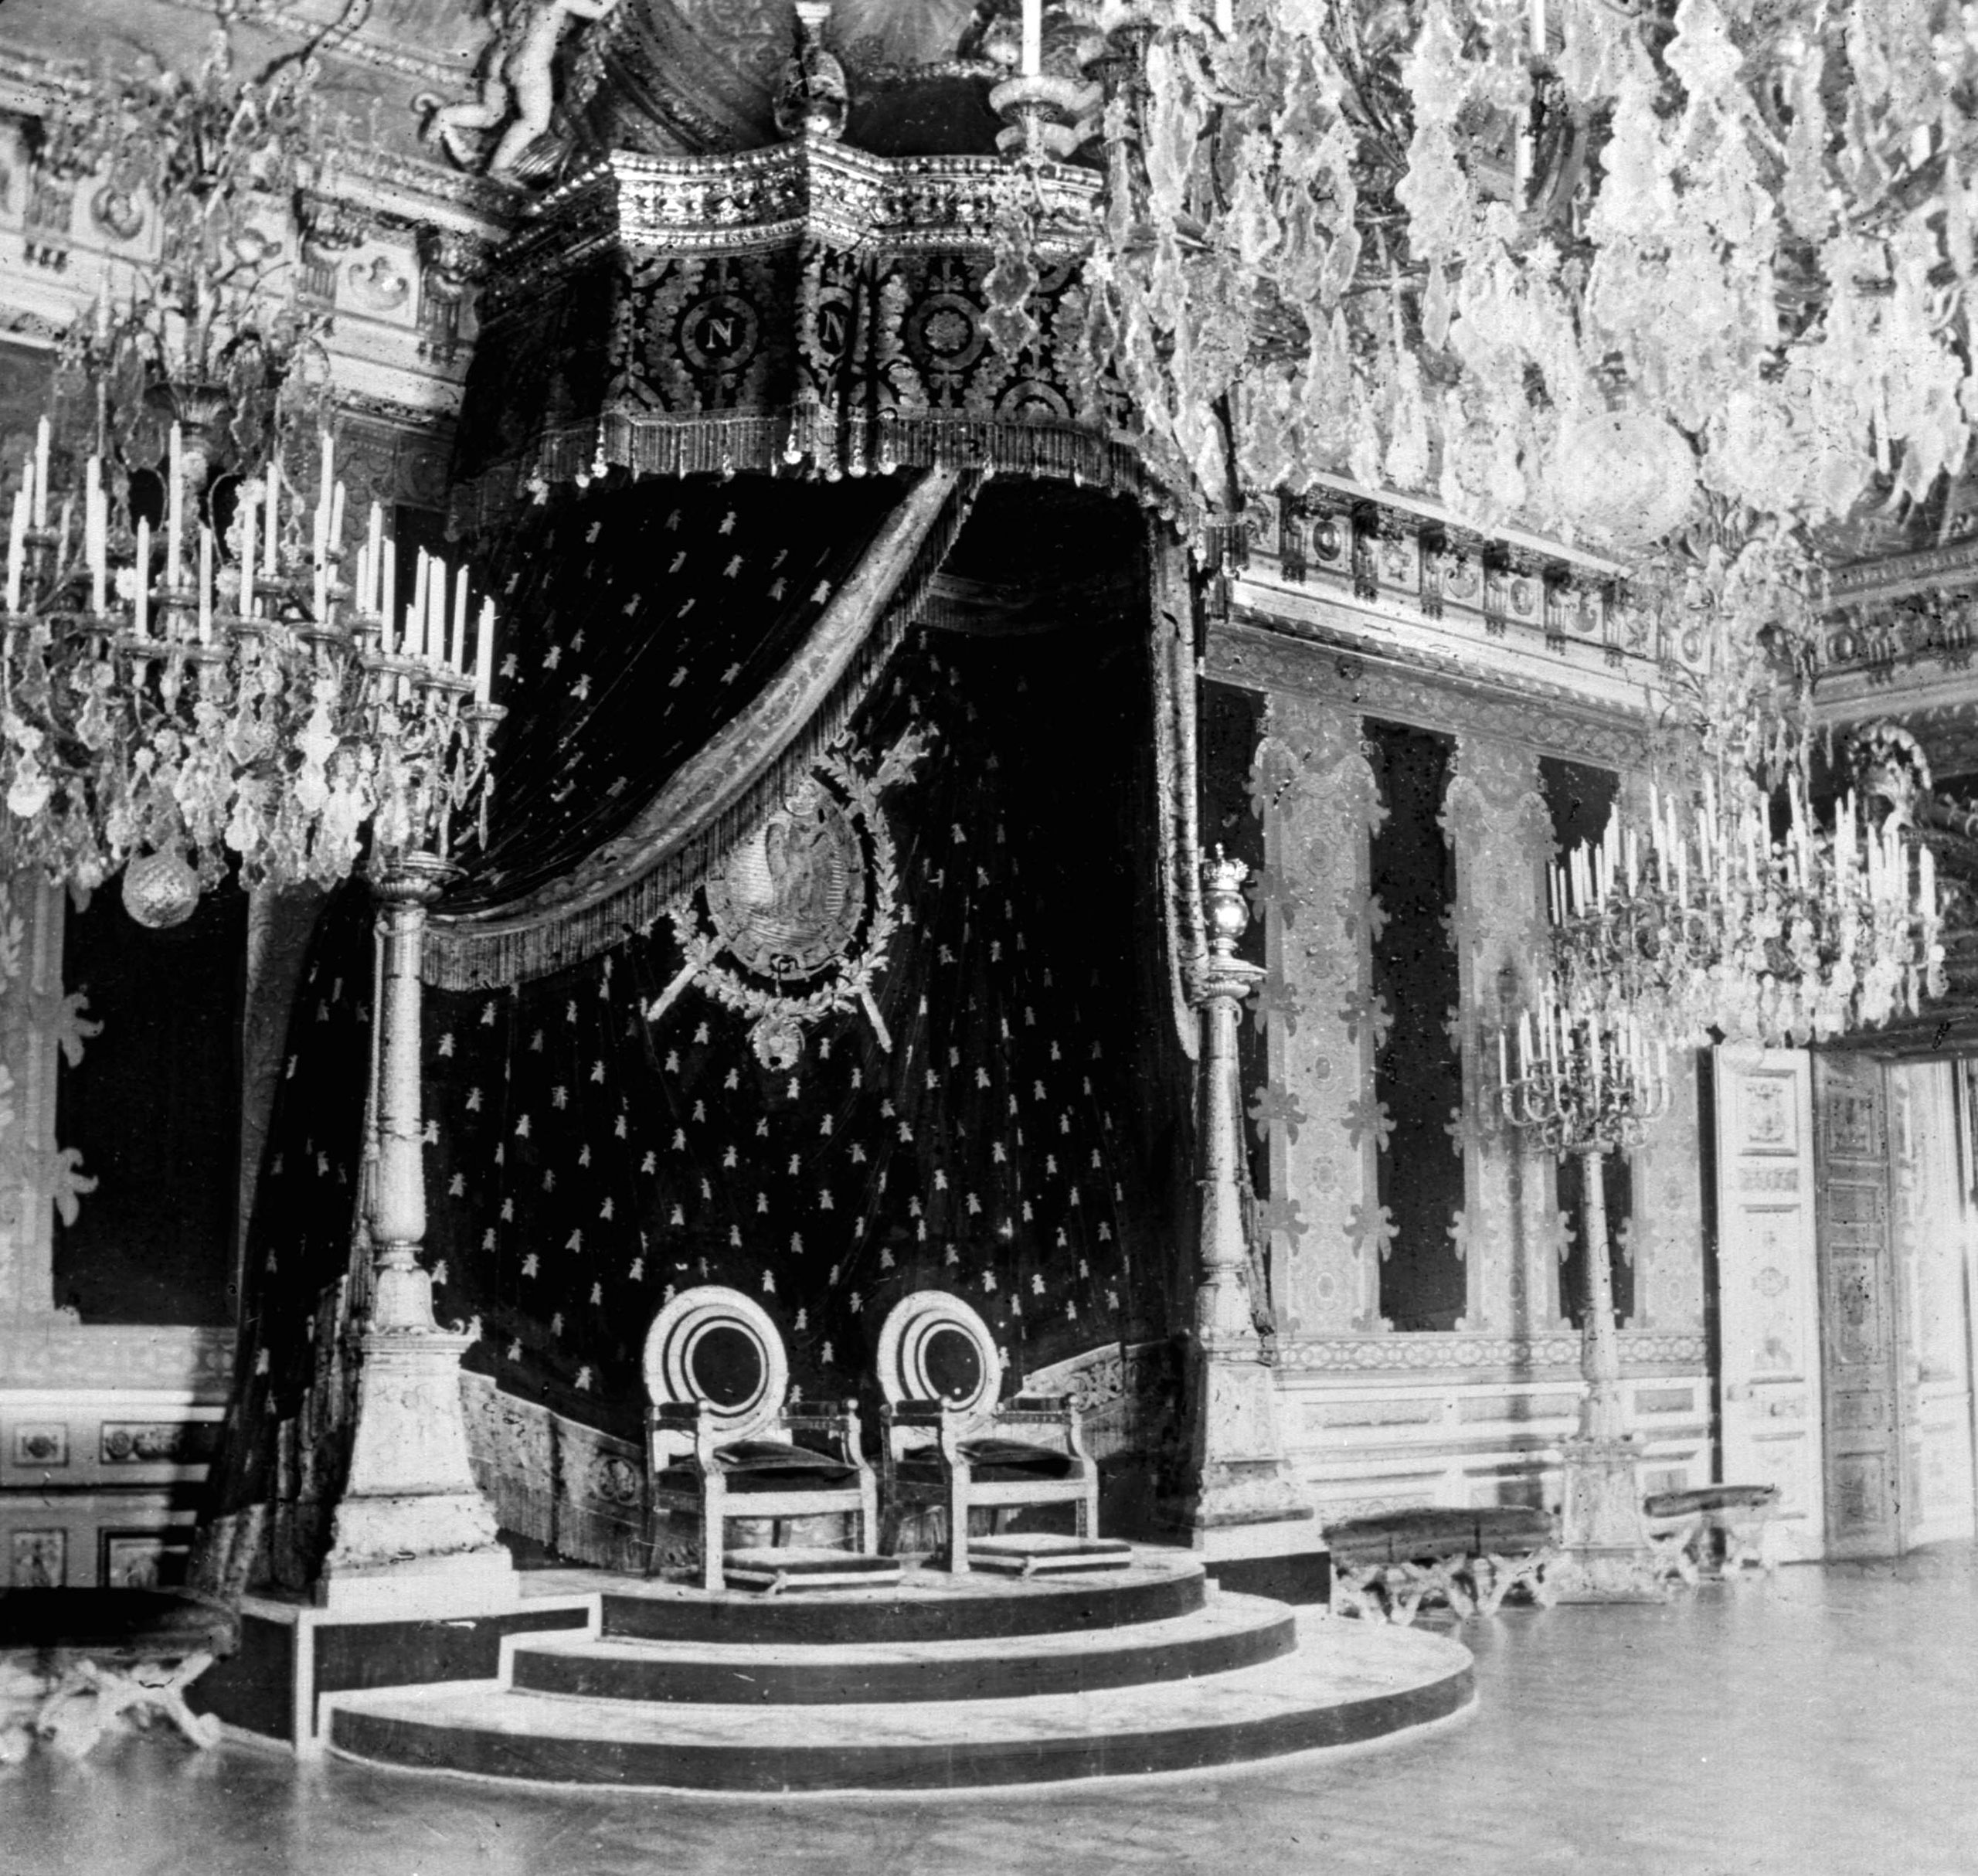 The throne room of the Tuileries Palace. Paris, before 1870.